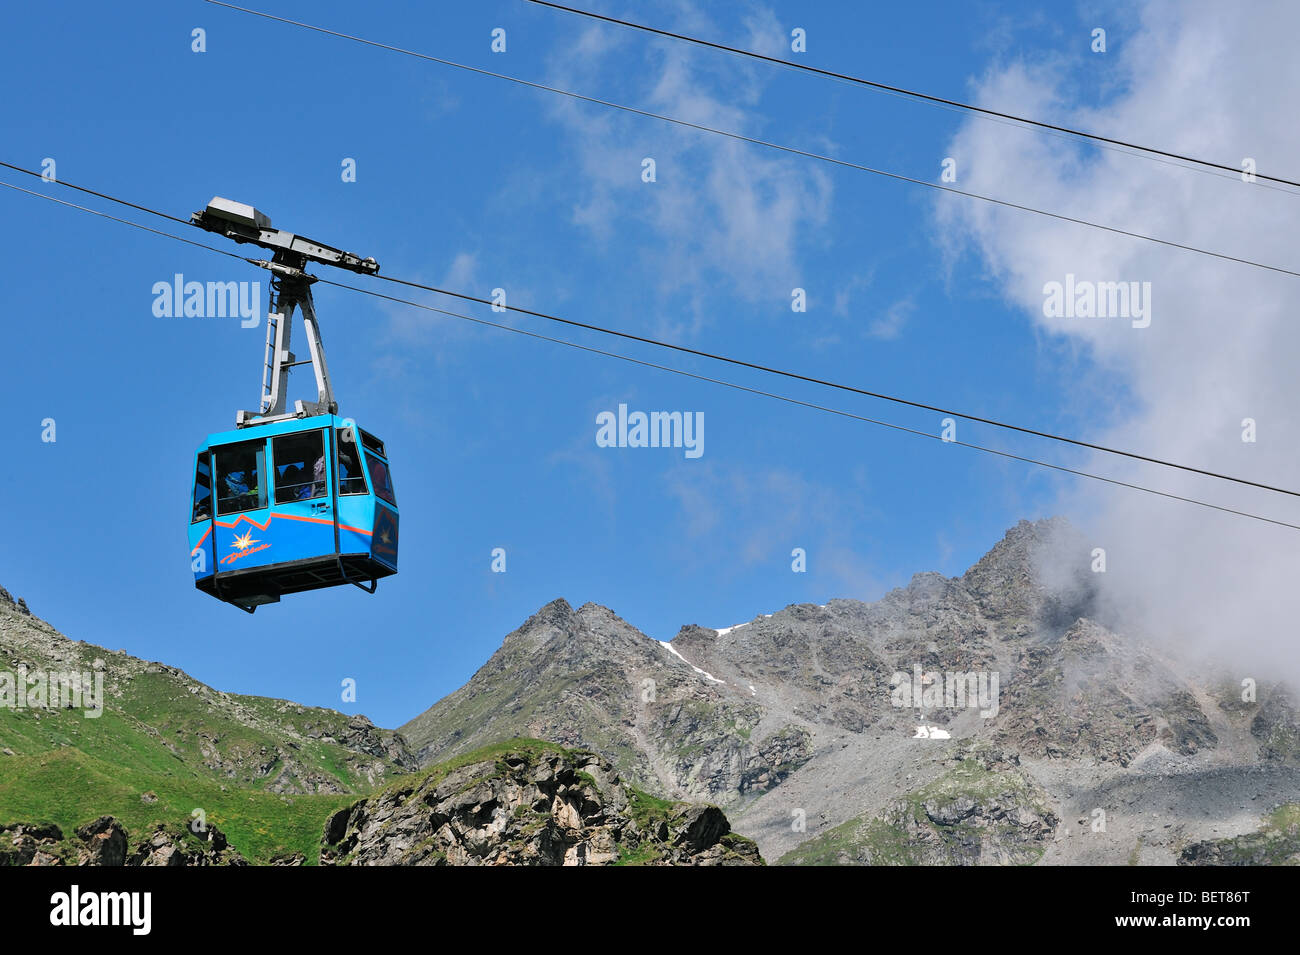 Tourists in cable car / cableway / cable-lift on a cloudy day in the mountains, Swiss Alps, Switzerland - Stock Image